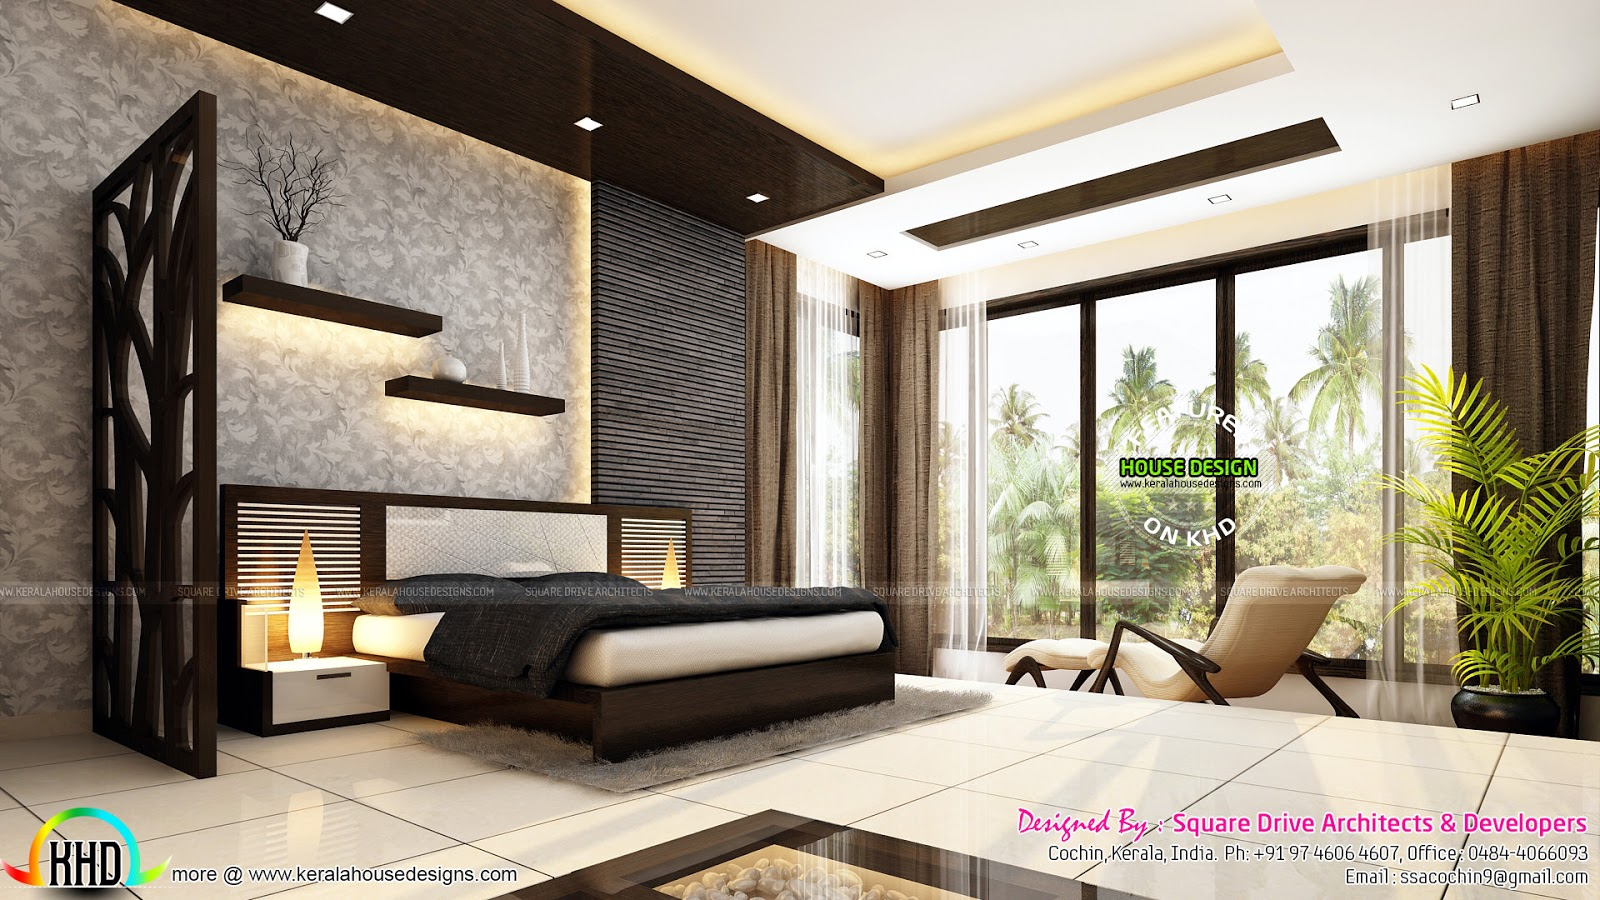 Very beautiful modern interior designs kerala home Beautiful home designs inside